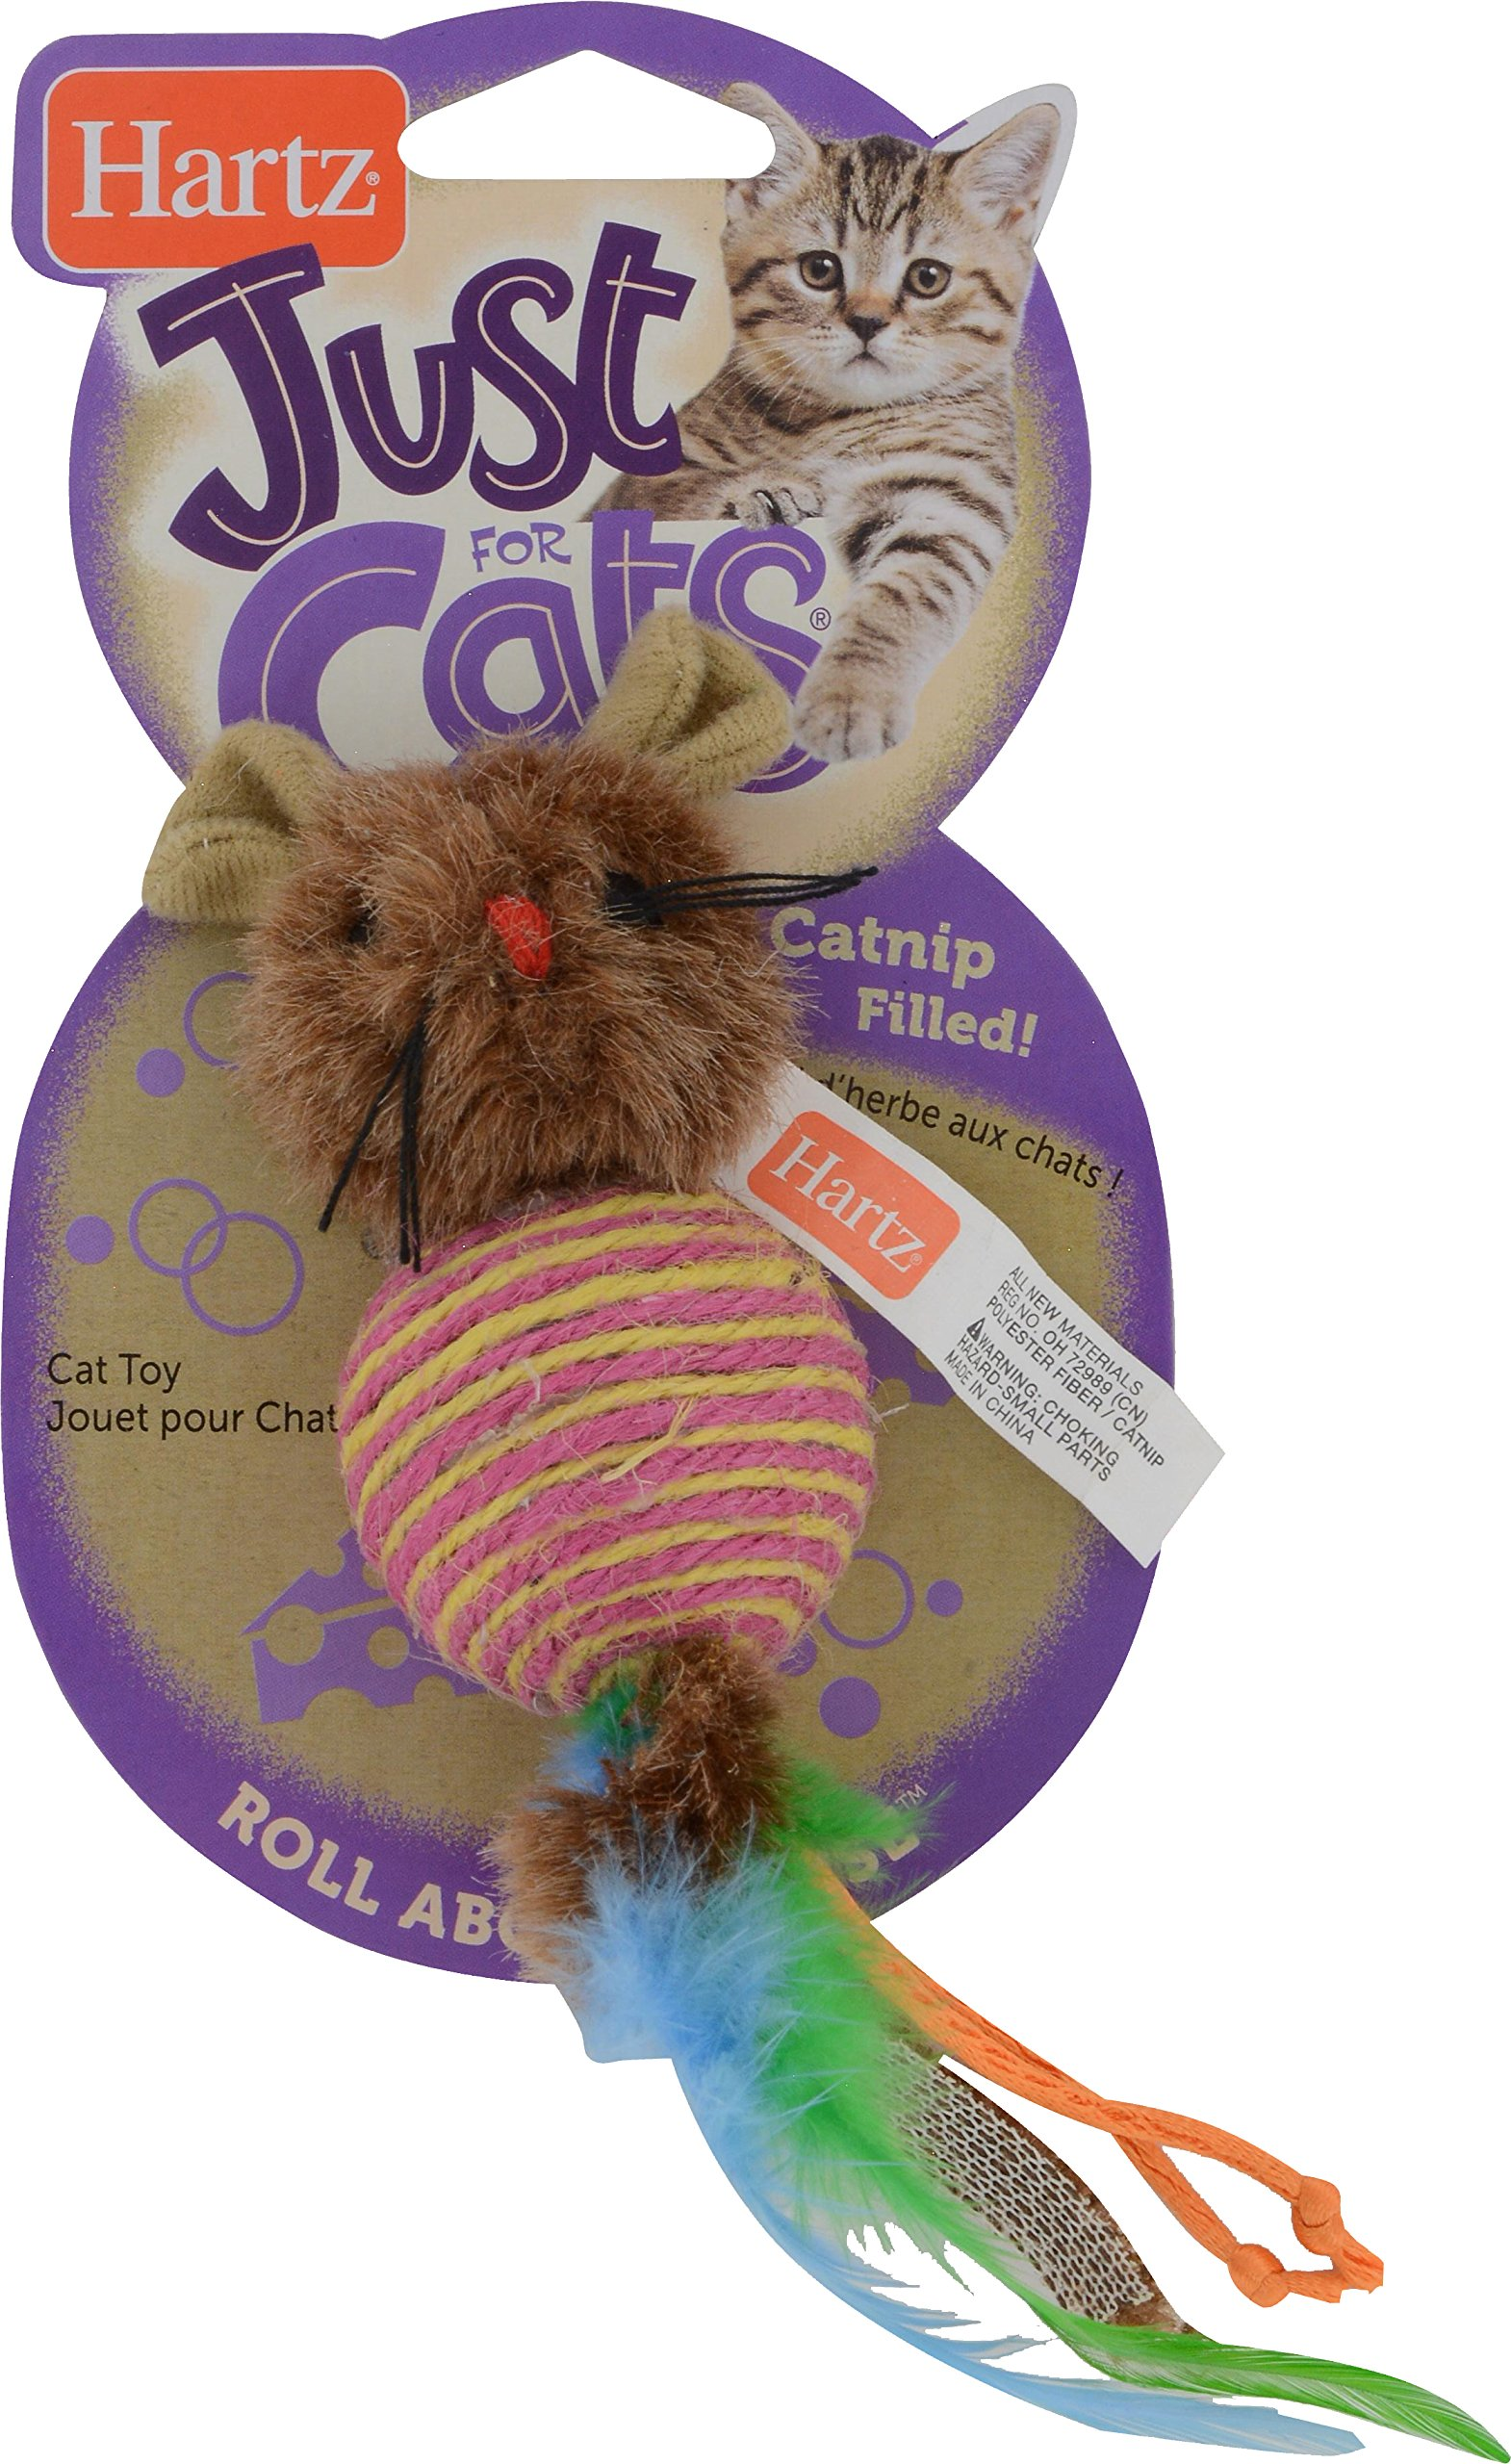 Hartz Just For Cats Roll About Mouse Catnip Toy